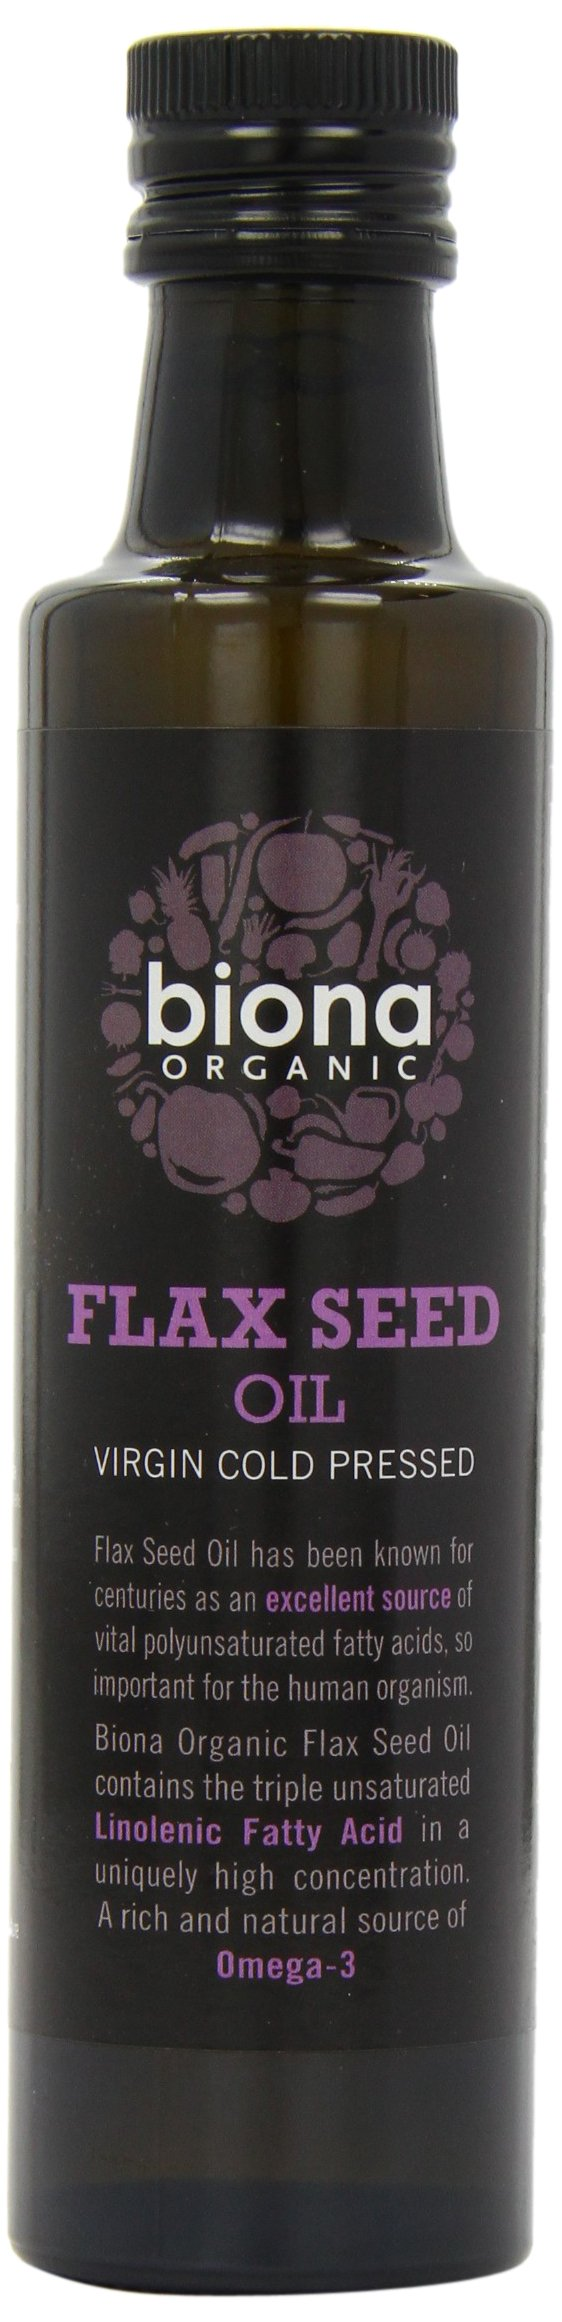 Biona Organic Cold Pressed Flax Oil (250ml) - Pack of 2